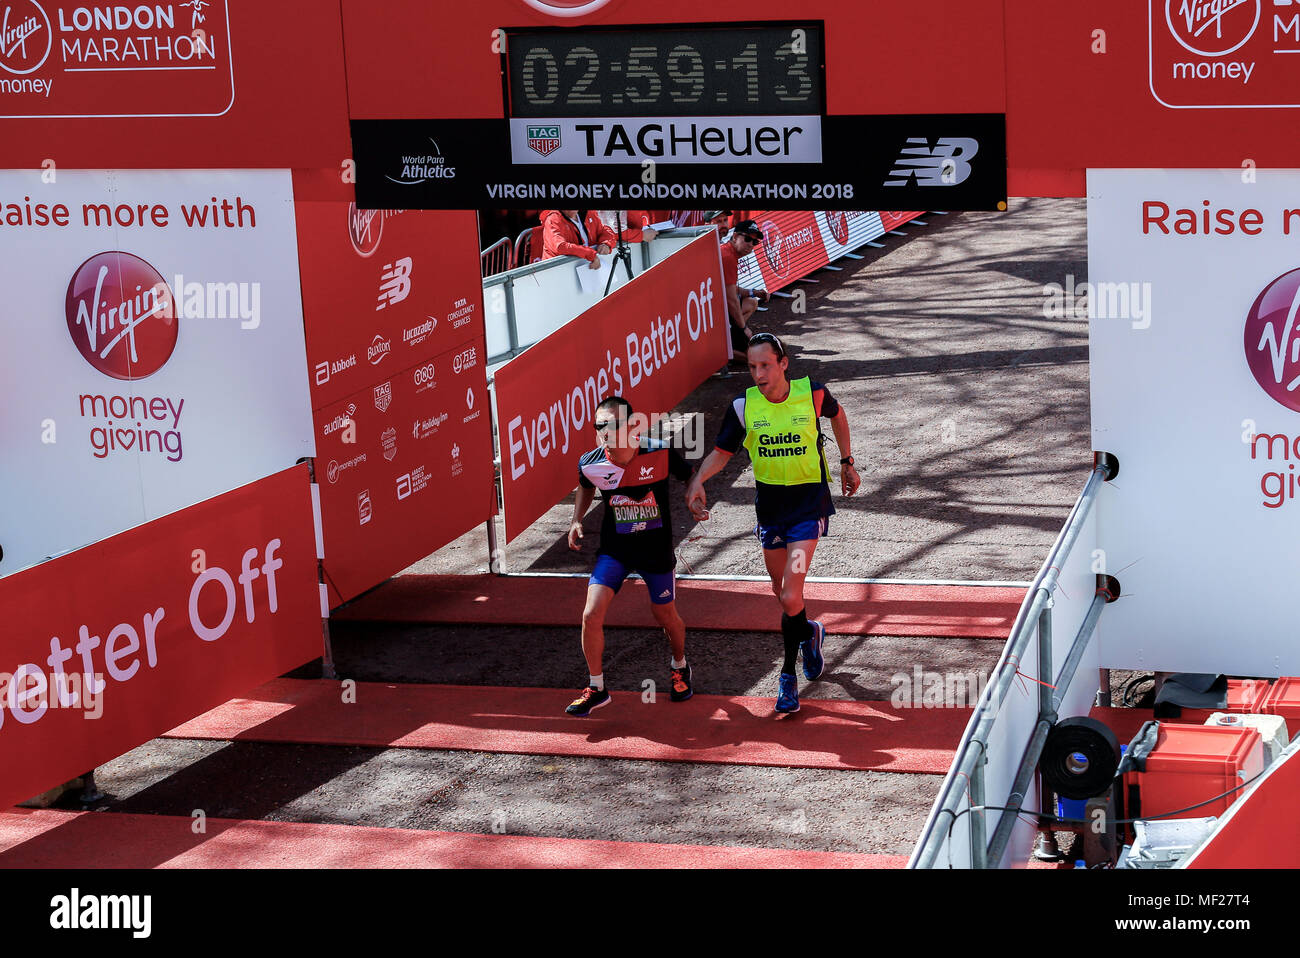 Nicolas BOMPARD crosses the finish line in Para-athletics Marathon World Cup for men para-athletes with visual impairment who run with a guide during the Virgin Money London Marathon in London, England on April 22, 2018. - Stock Image